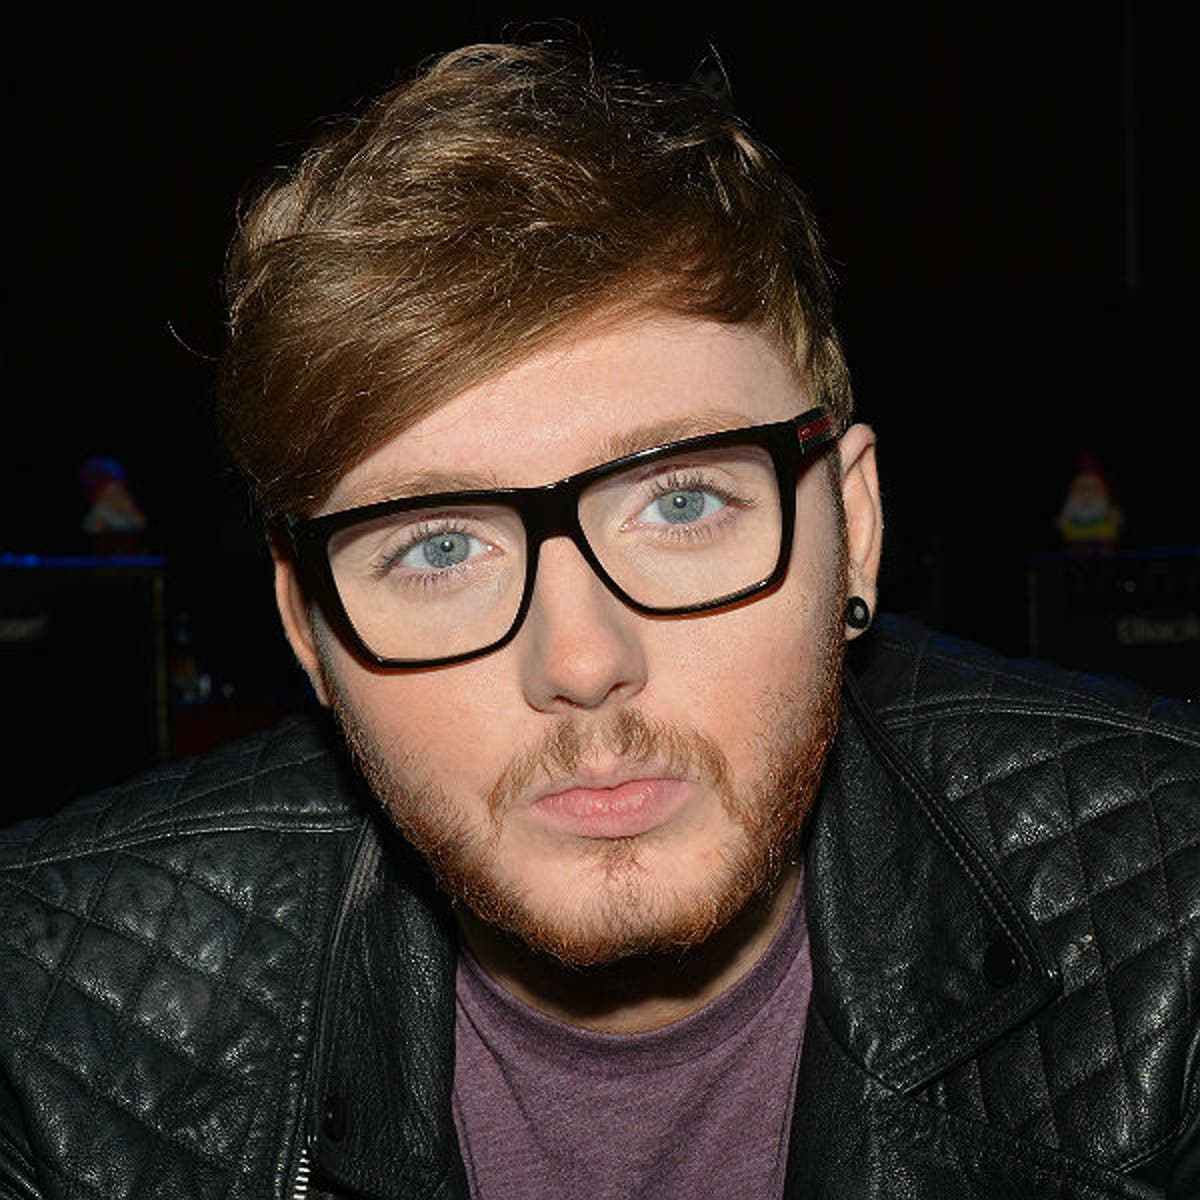 James Arthur claims X Factor winners are 'puppets', wants to